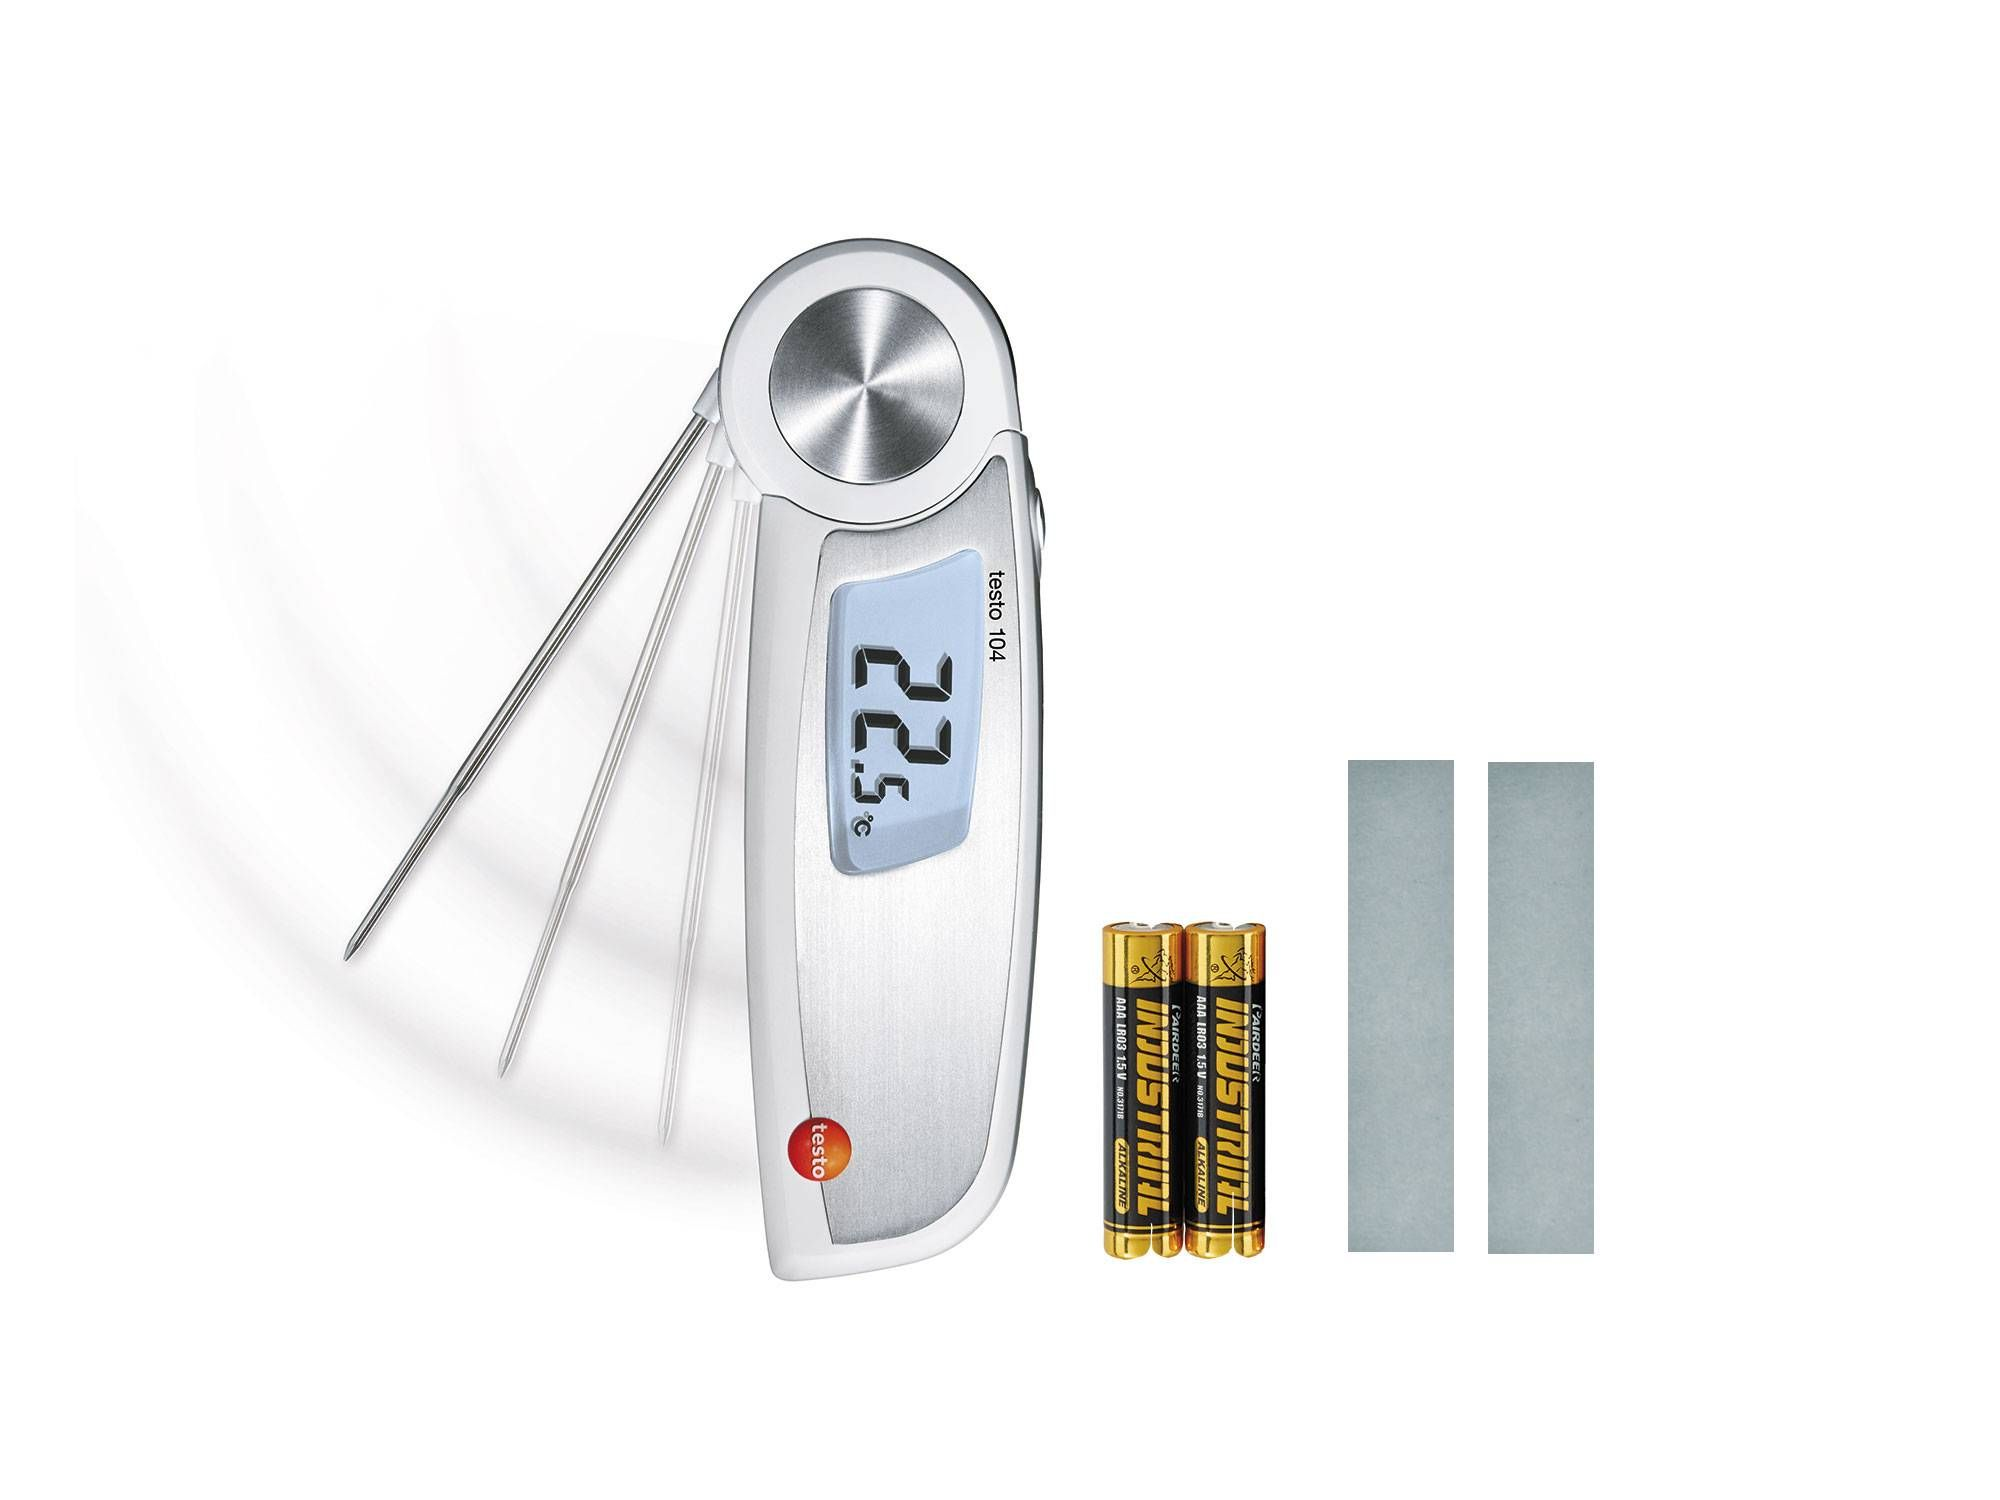 testo 104 - Waterproof thermometer